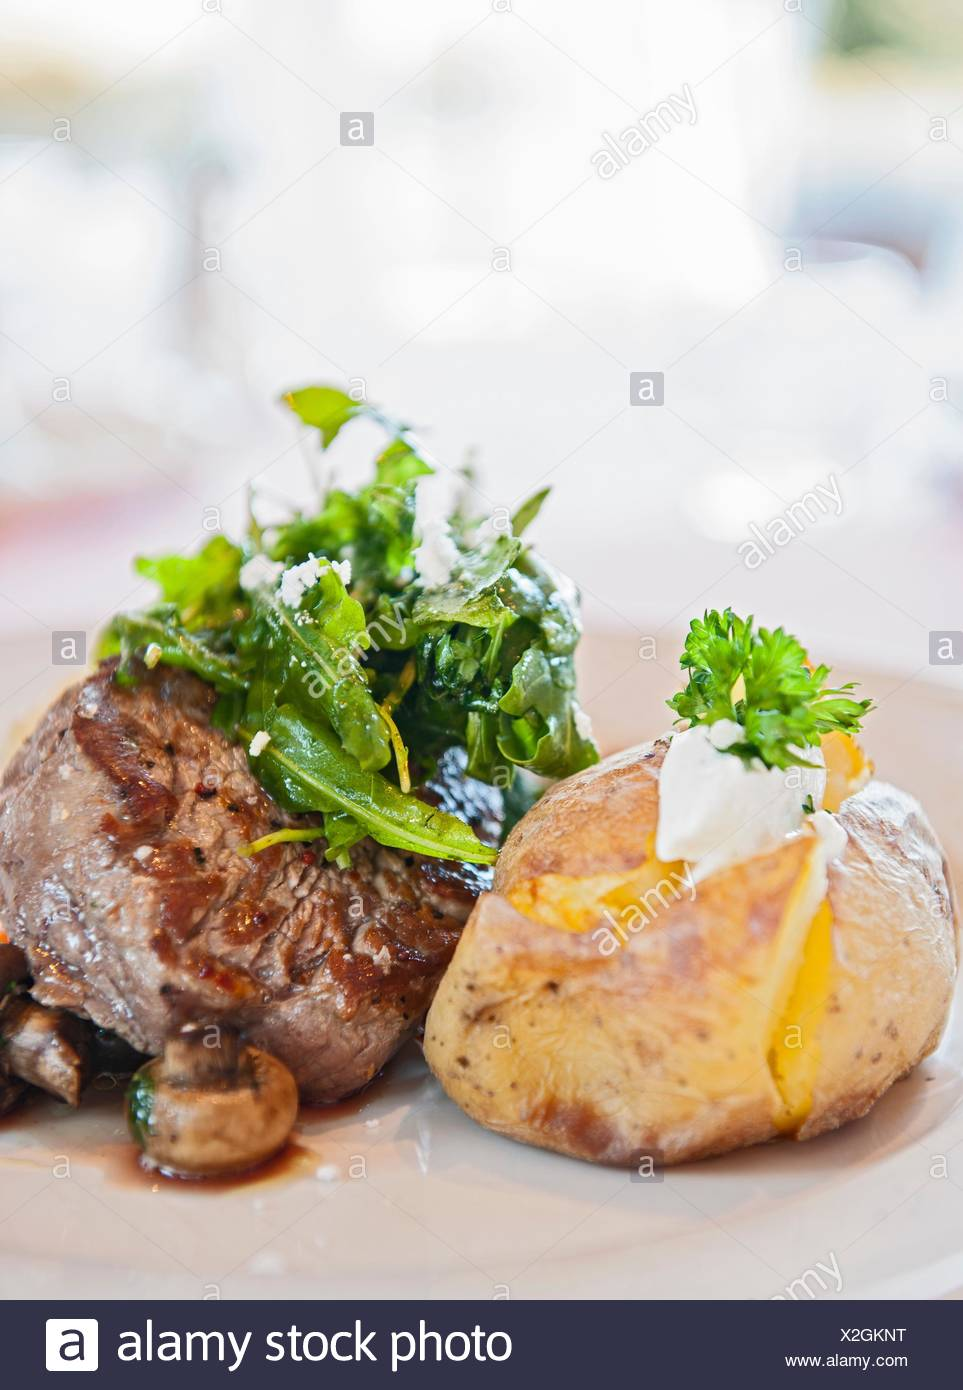 Beef fillet with baked potato - Stock Image